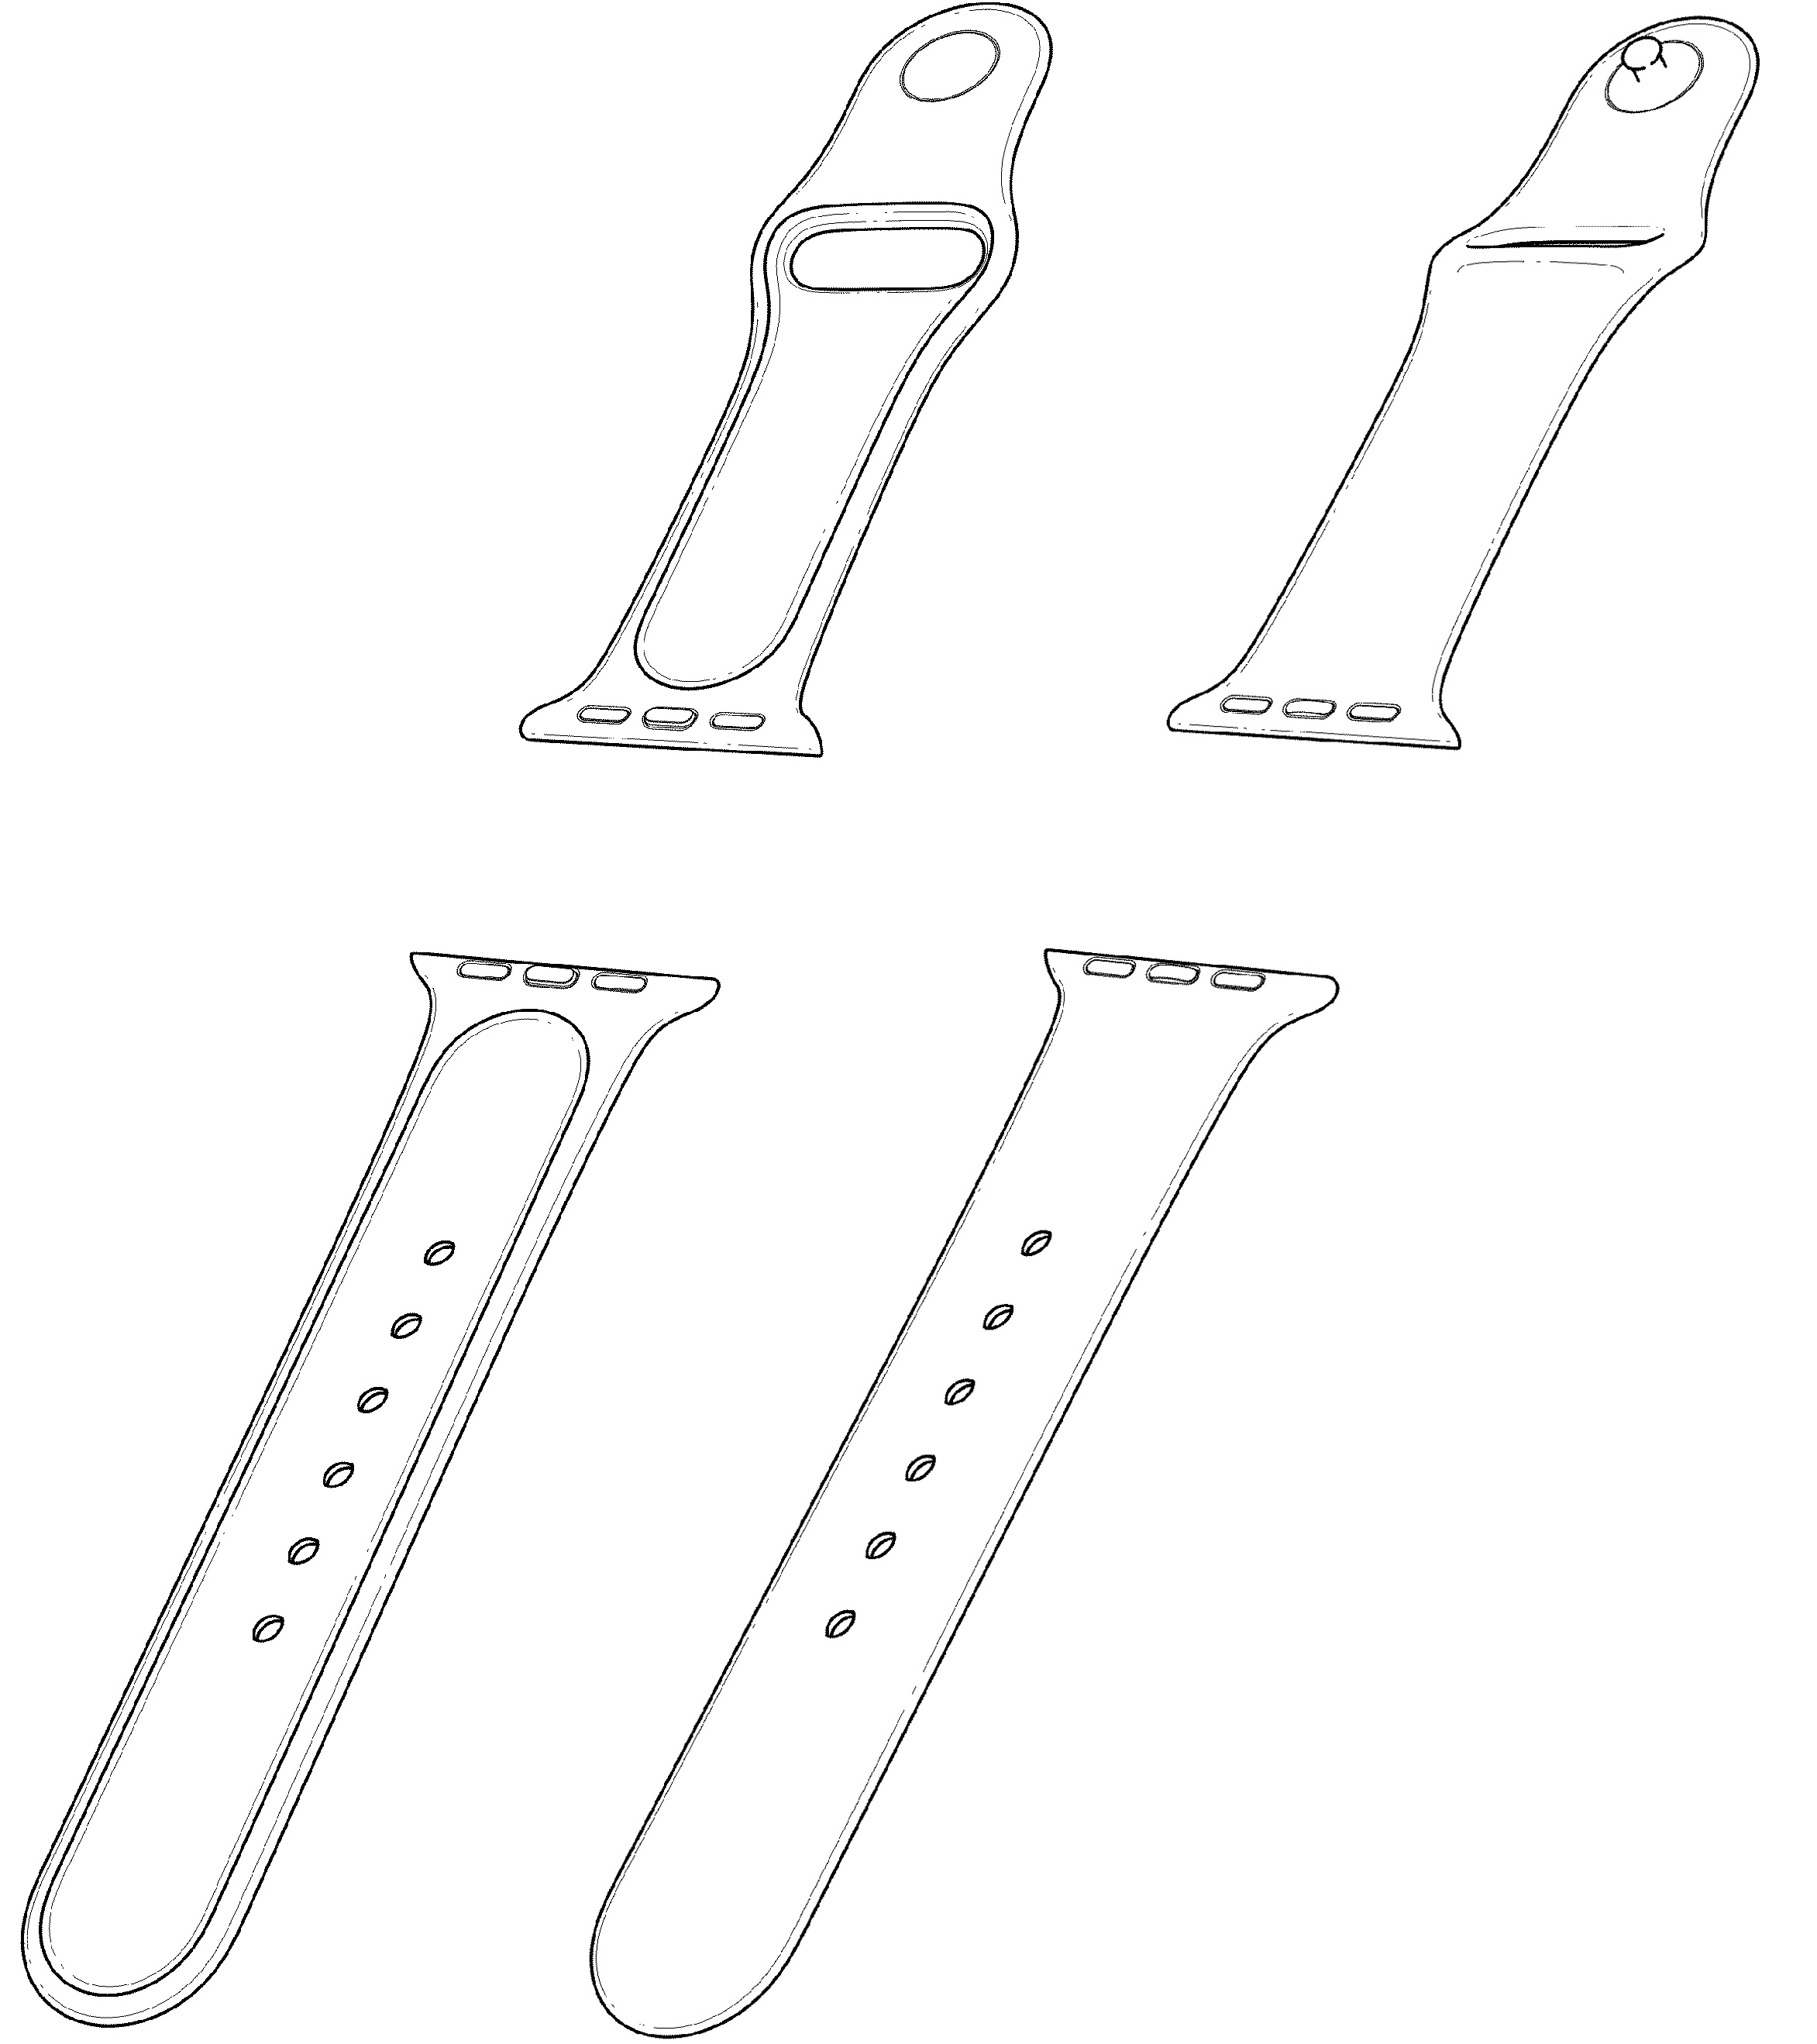 Apple patent Watch Sport Band design 002